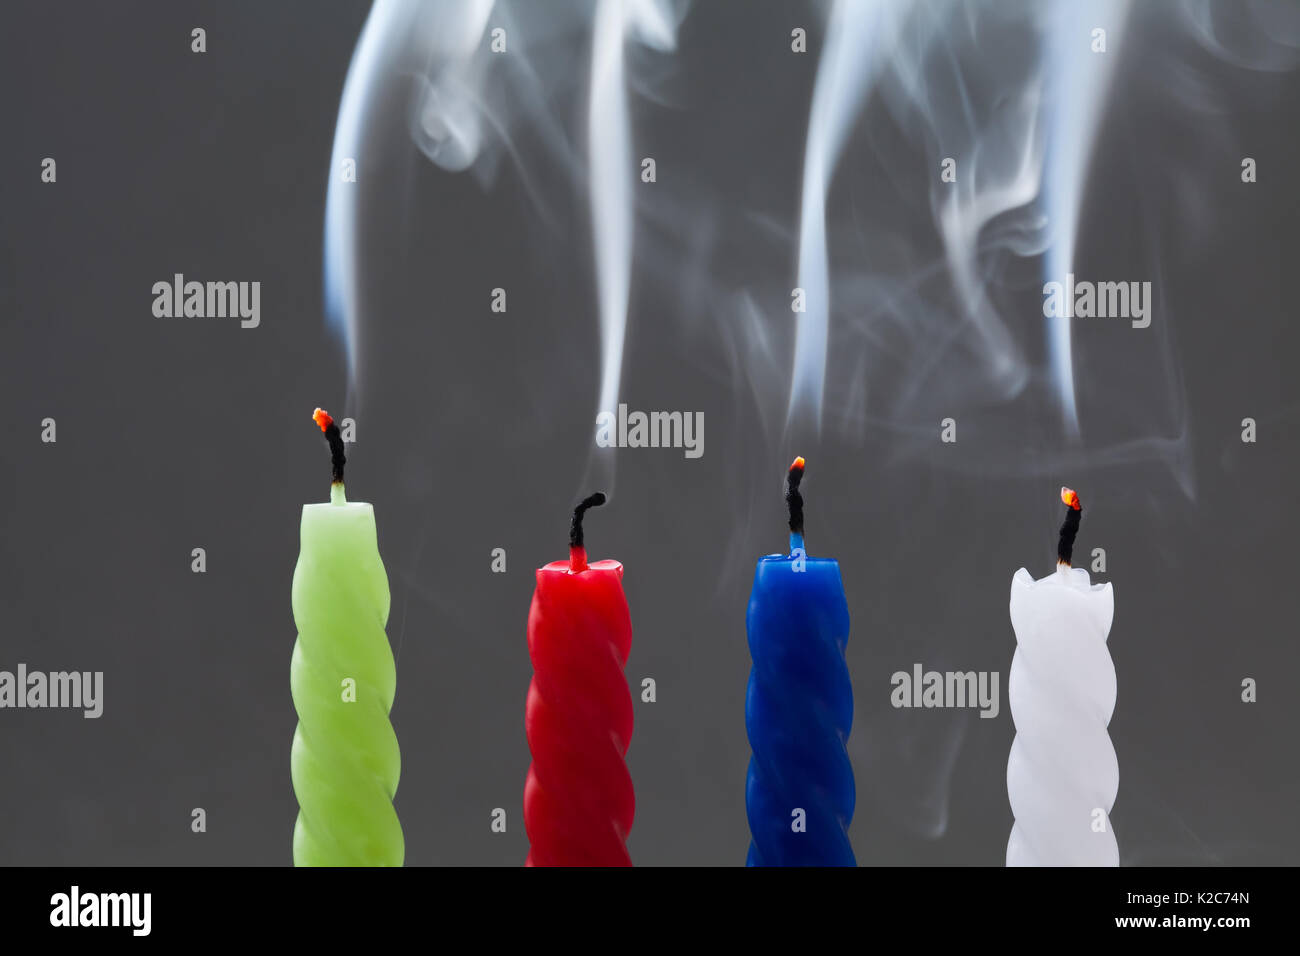 Colorful extinguished candles with white smoke on gray background. four pieces: green, red, blue, white. fading, finishing concept. soft focus macro view - Stock Image